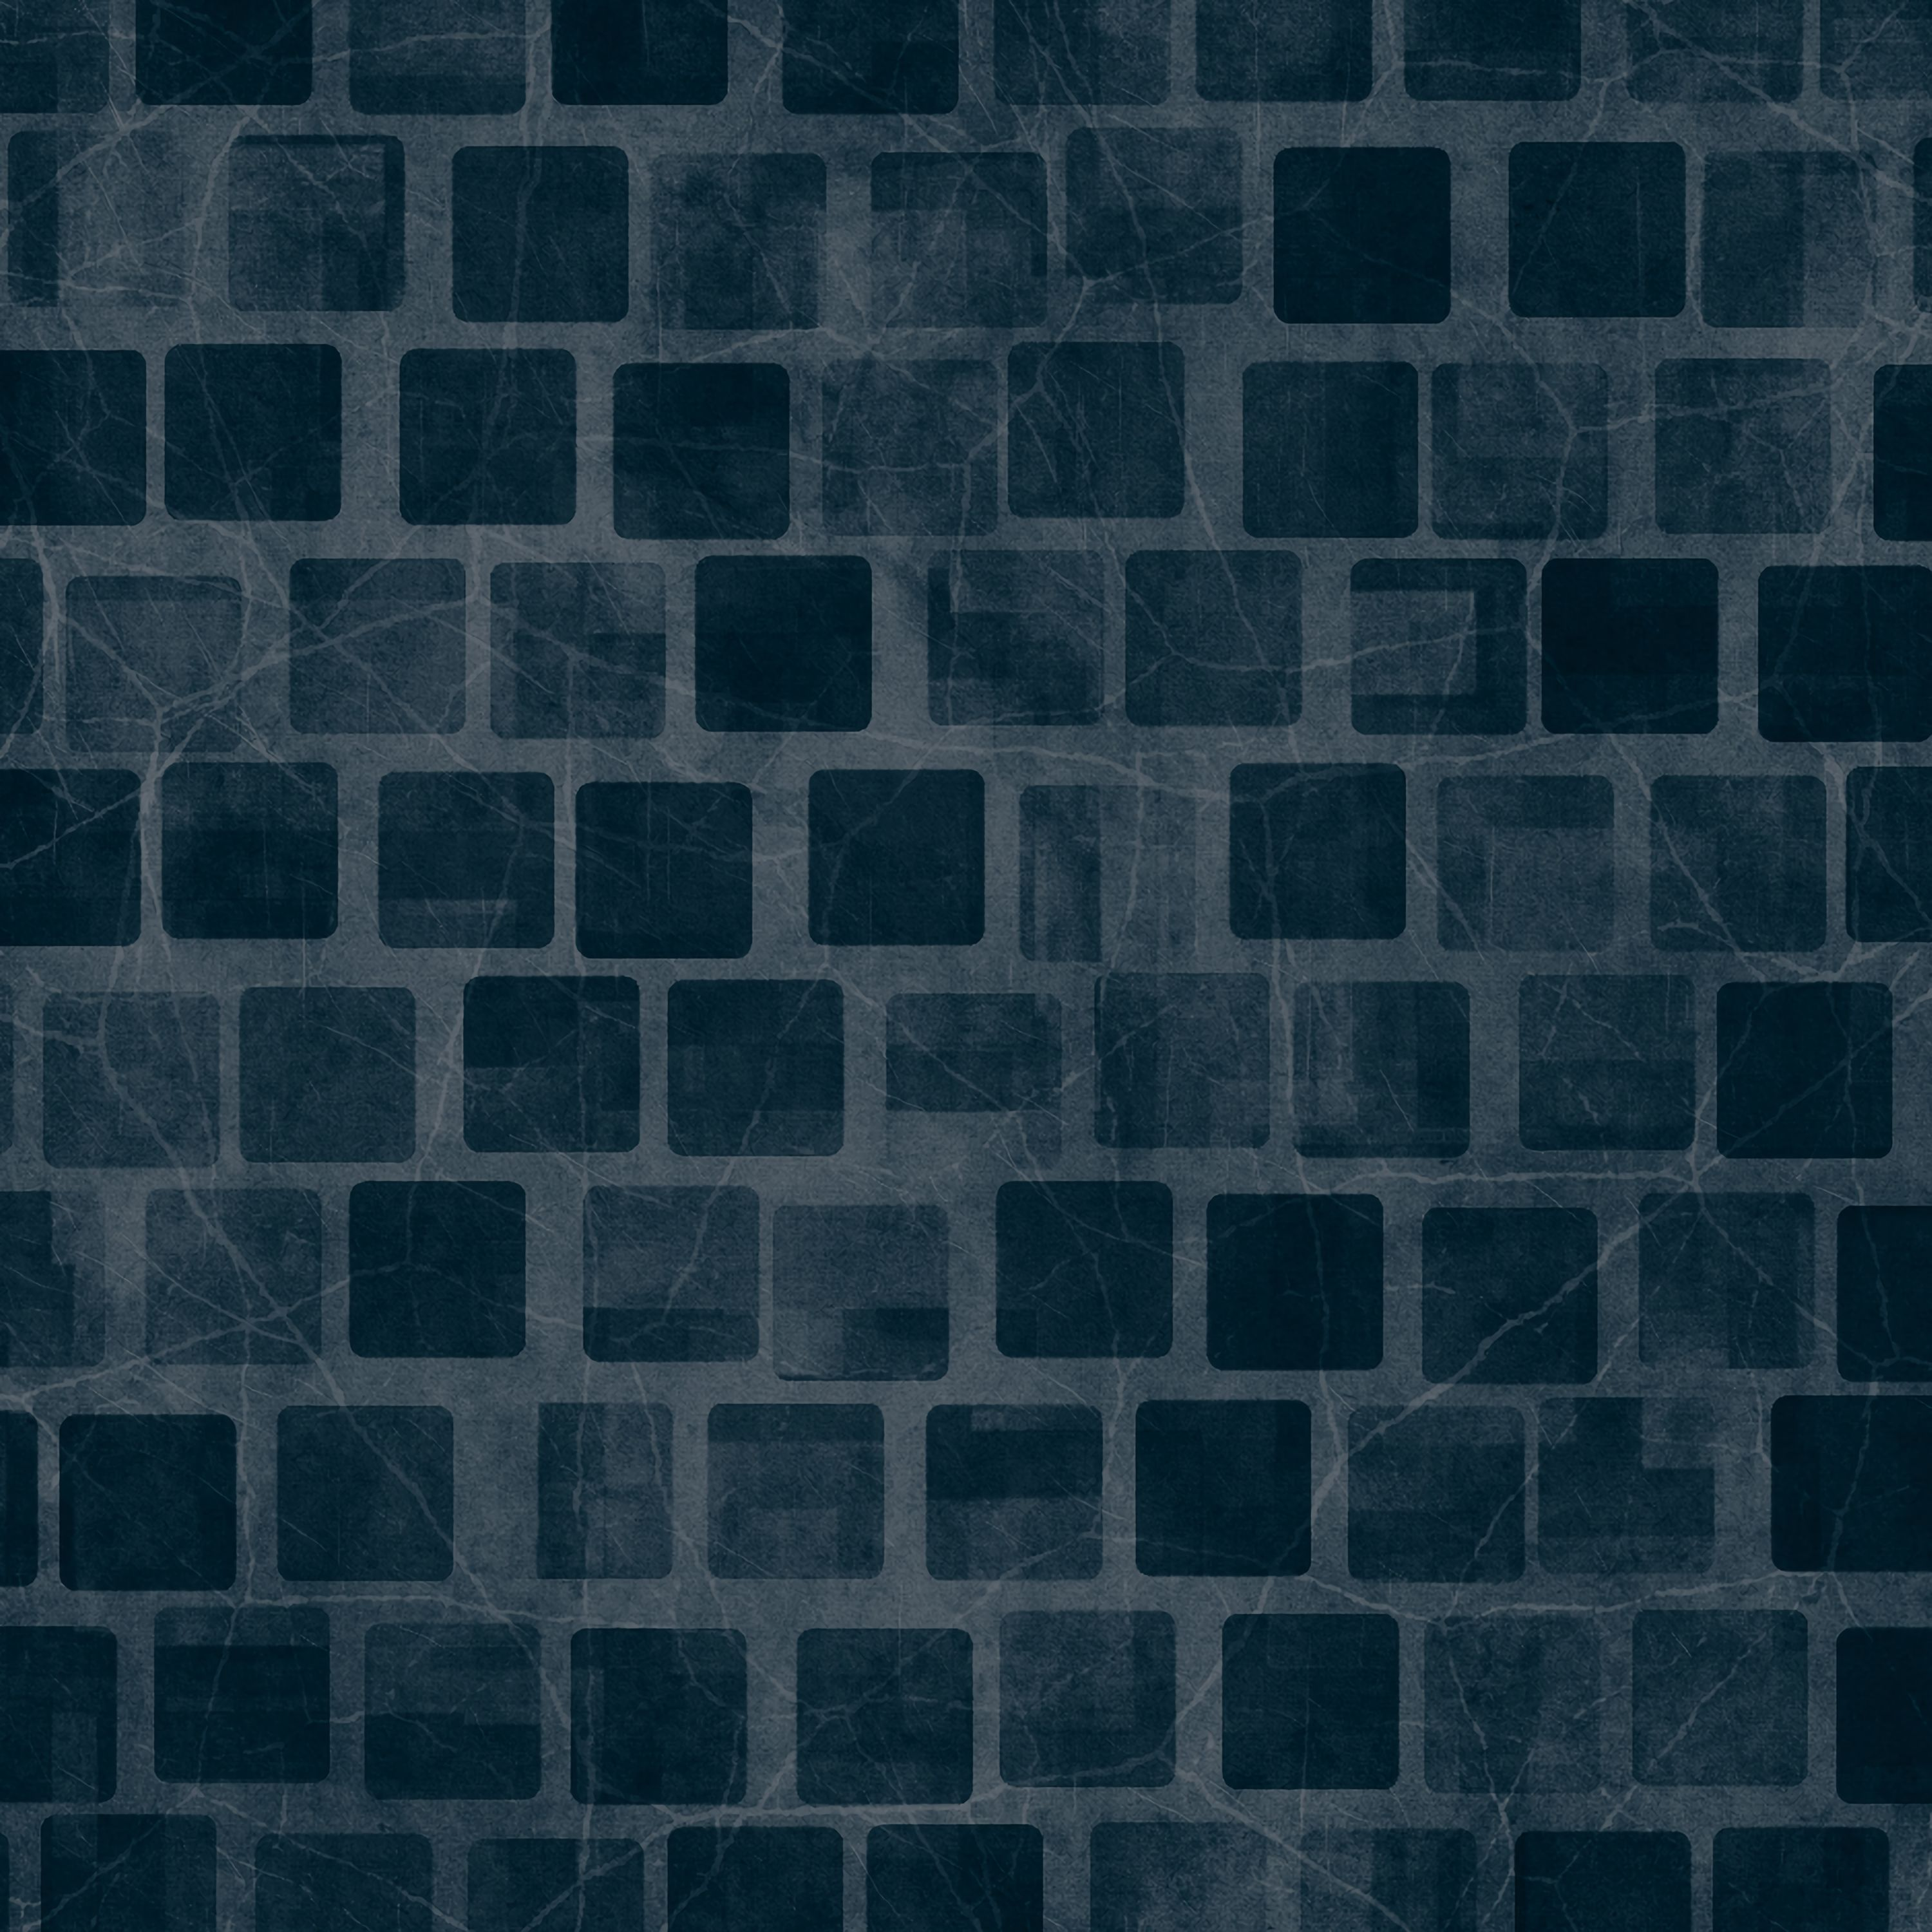 91147 download wallpaper Textures, Texture, Squares, Grey, Patterns screensavers and pictures for free